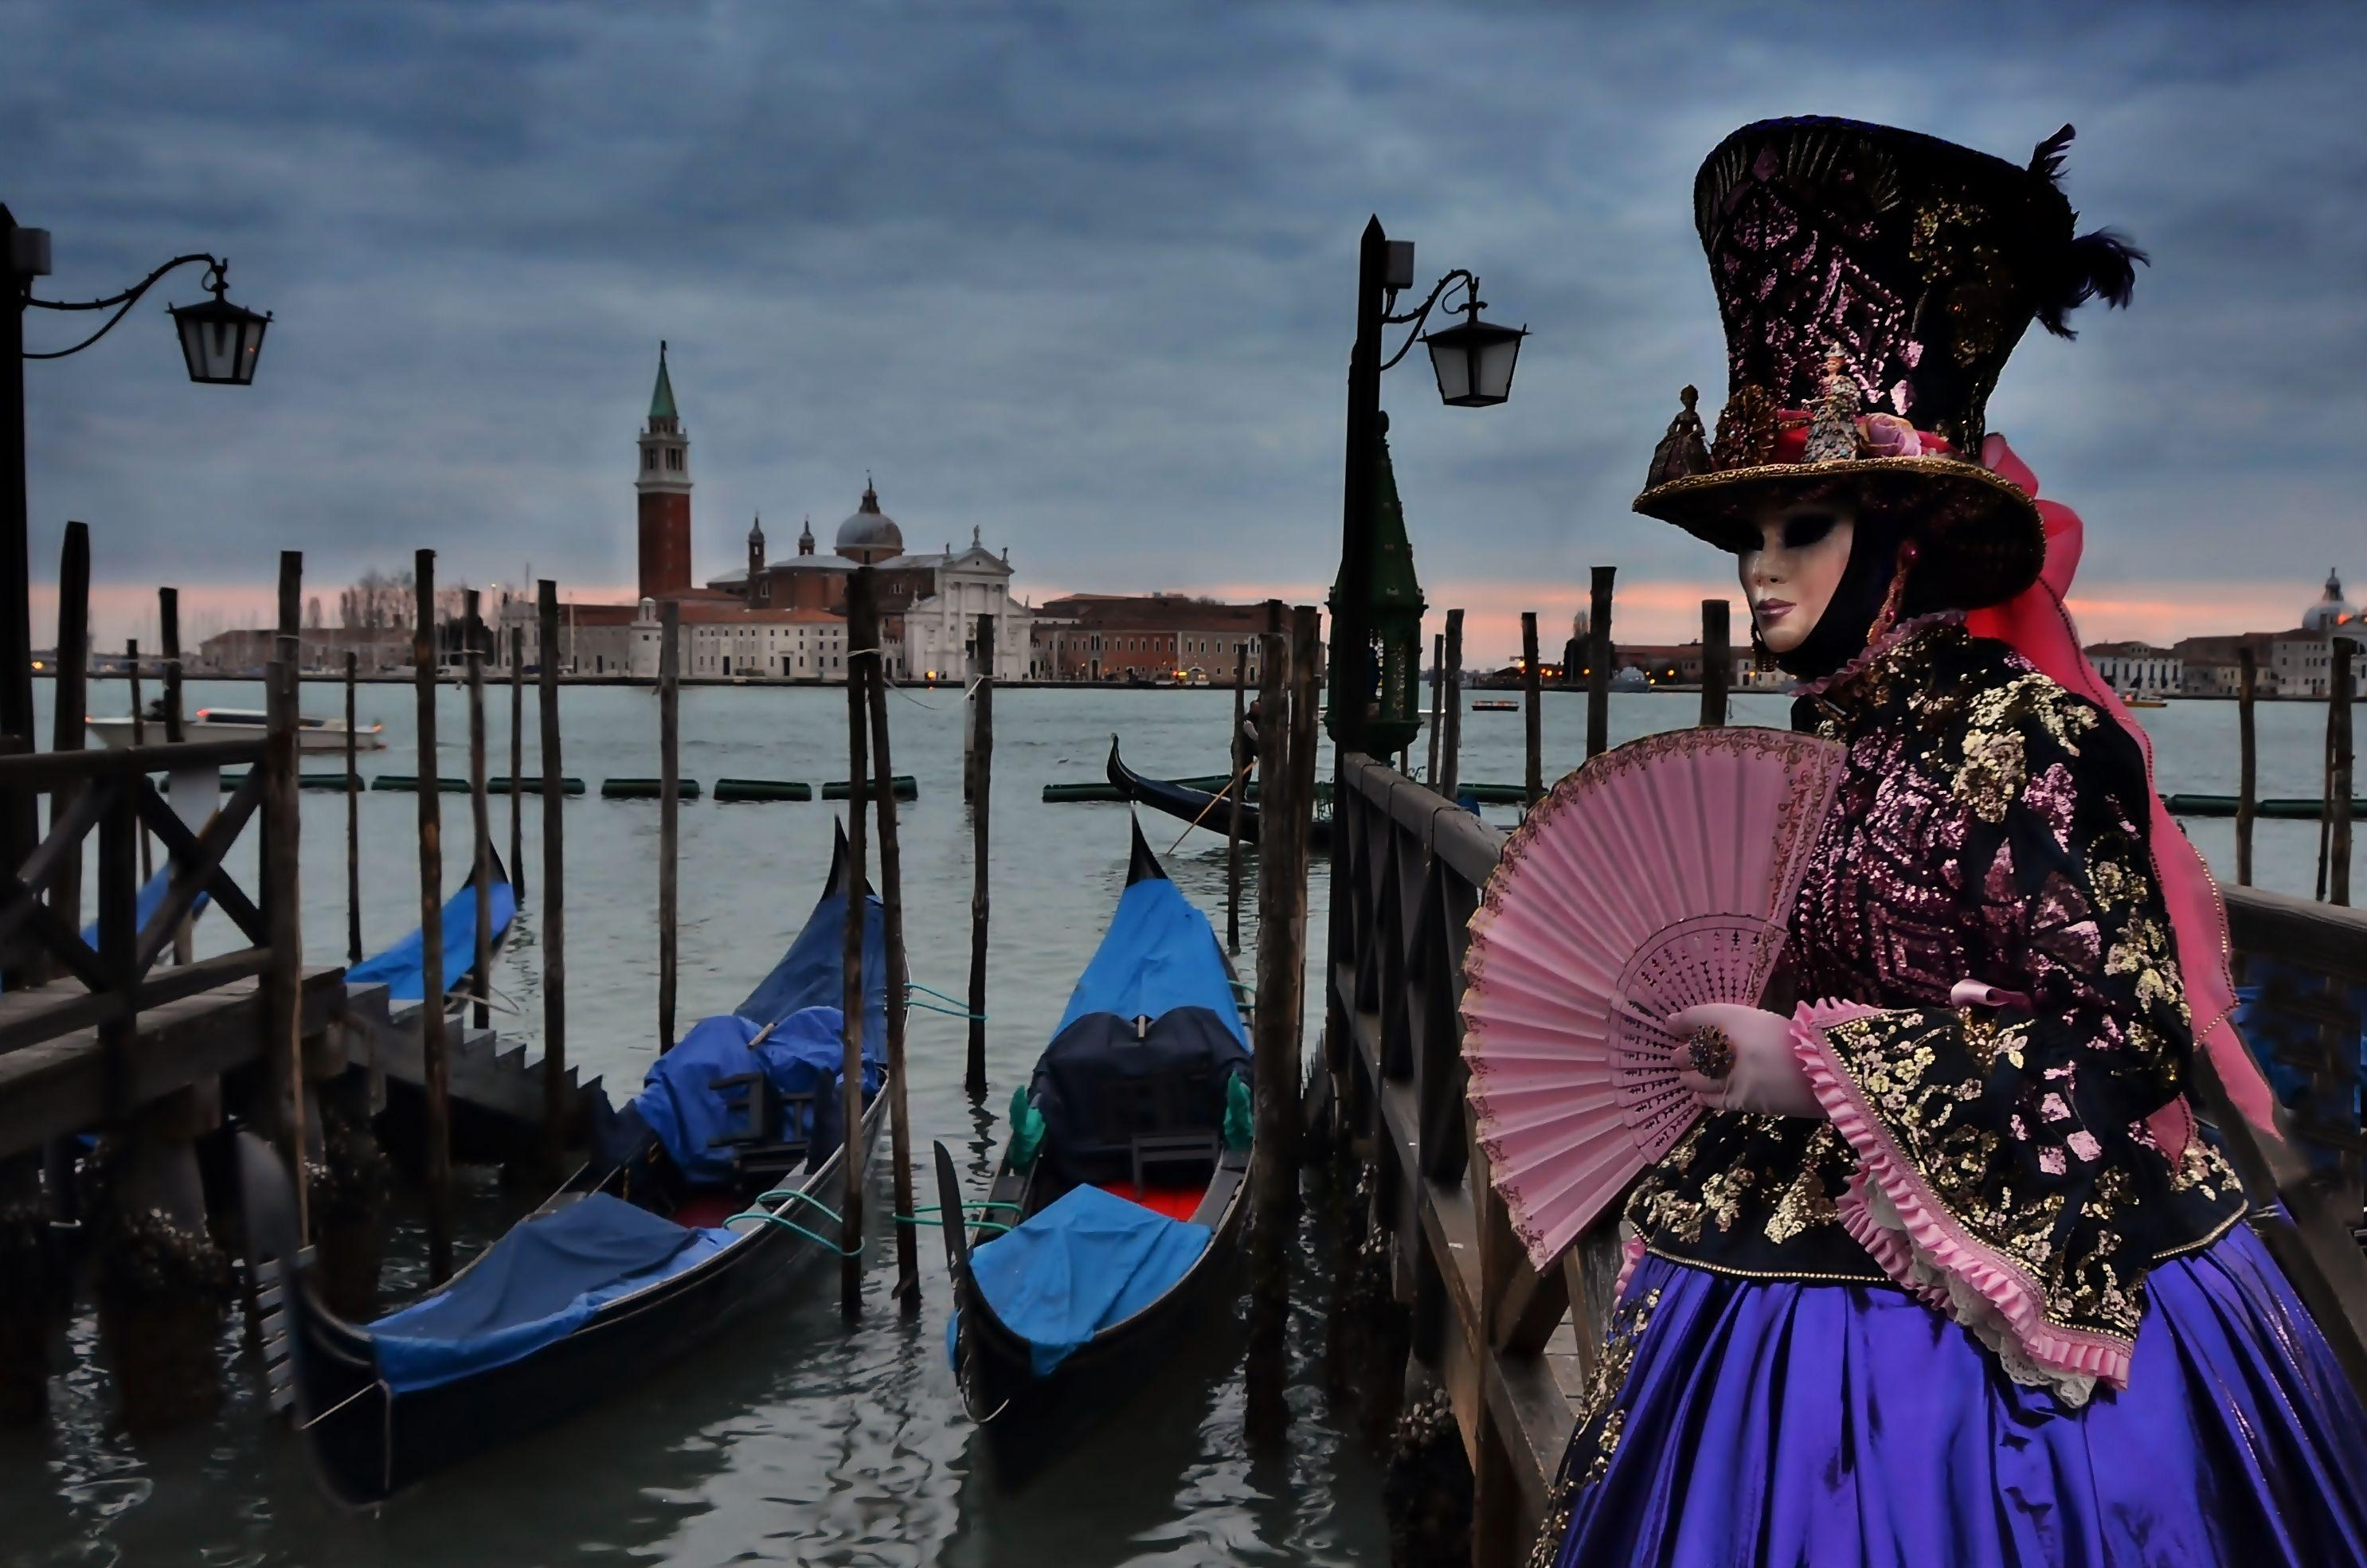 Wallpapers : boat, sunset, water, sky, Venice, vehicle, mask, Tourism